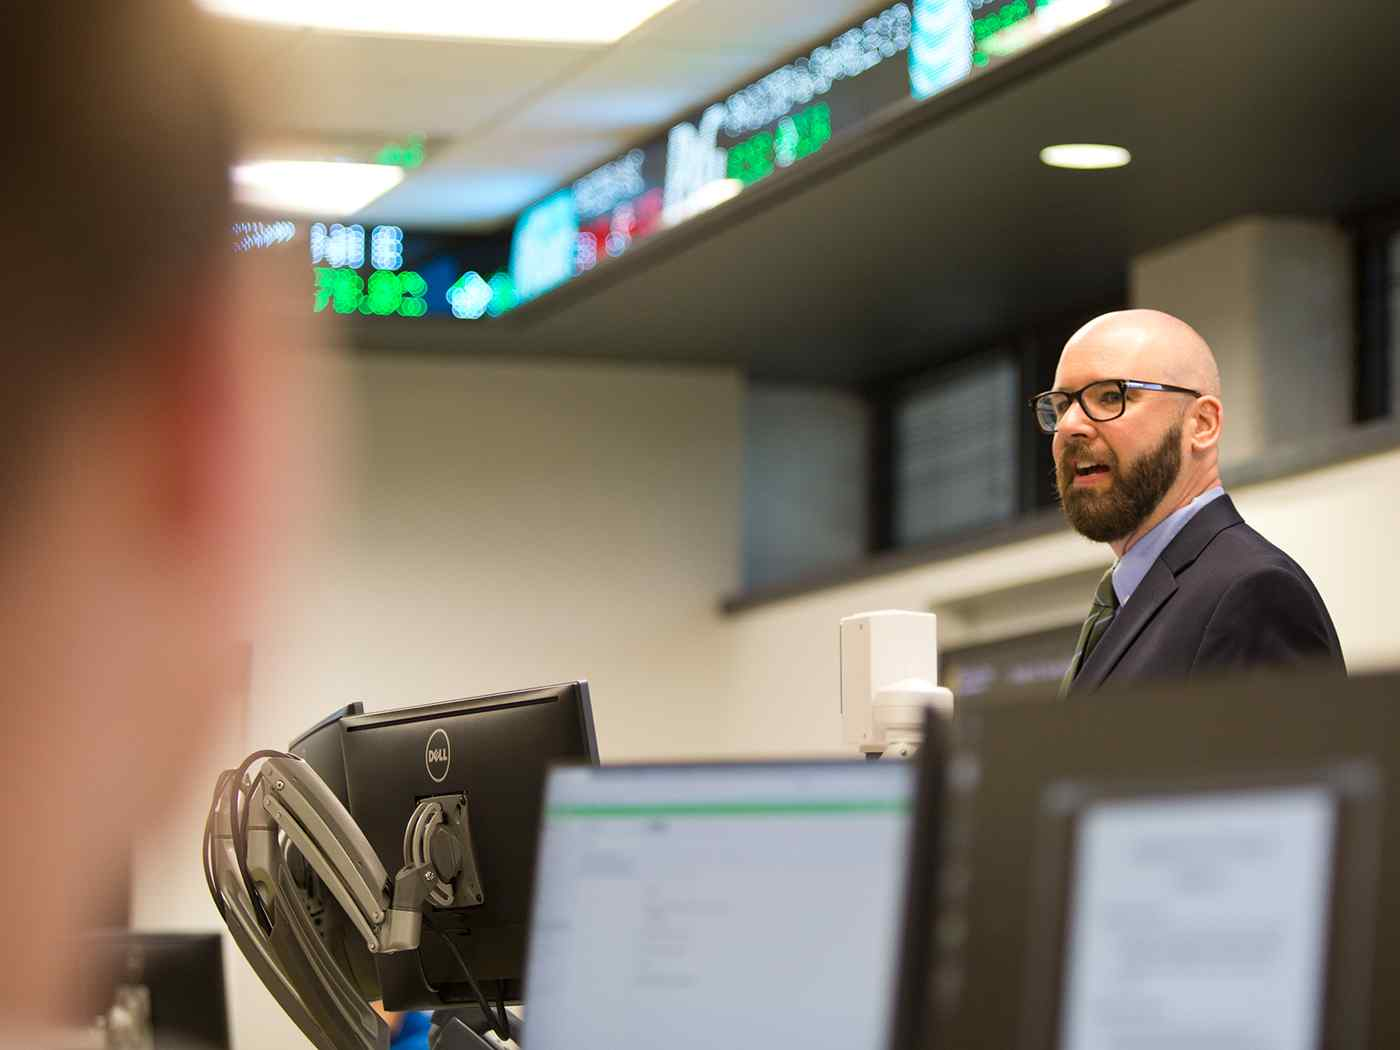 Professor teaching in trading center